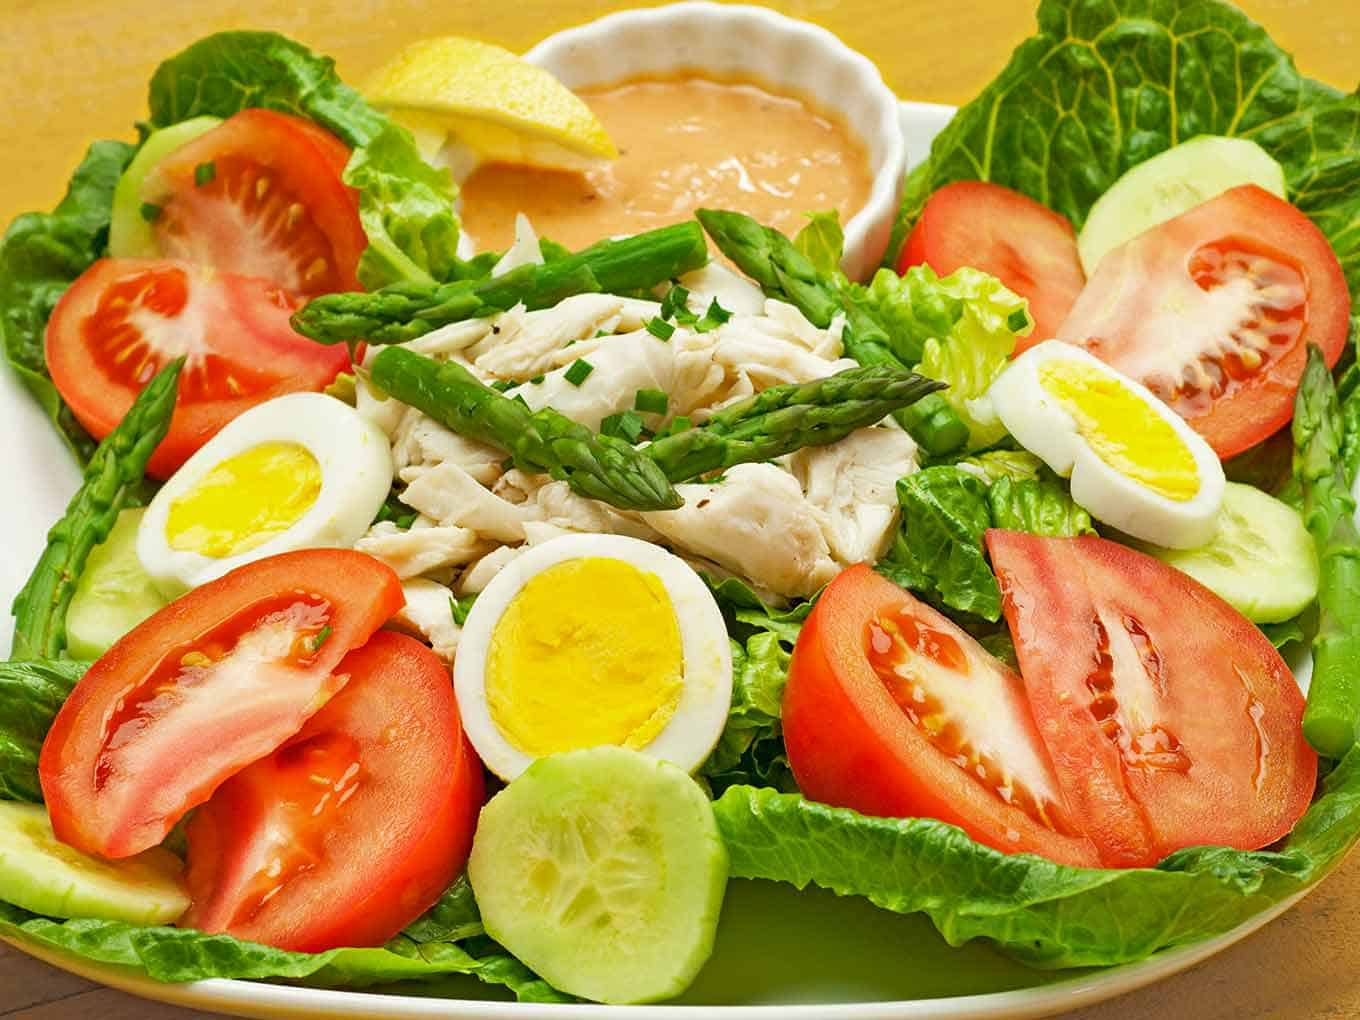 A serving of crab Louie salad, lettuce, tomatoes, hard cooked eggs, crab, cucumber, asparagus, dressing, and a lemon wedge.